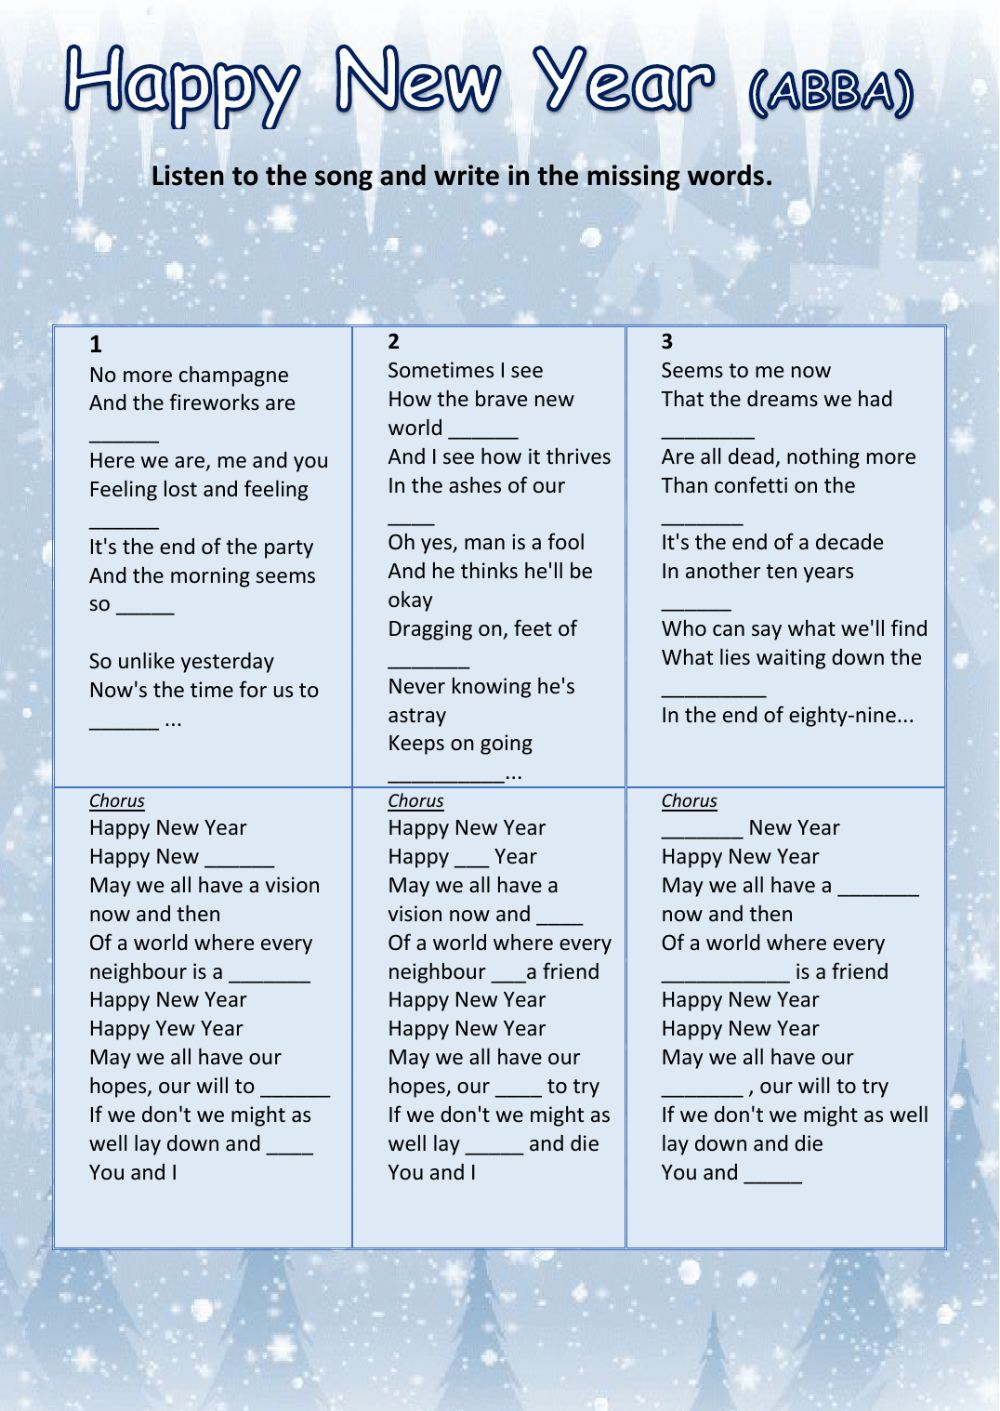 Happy New Year Abba Interactive Worksheet Songs Happy New Year Song English Exercises